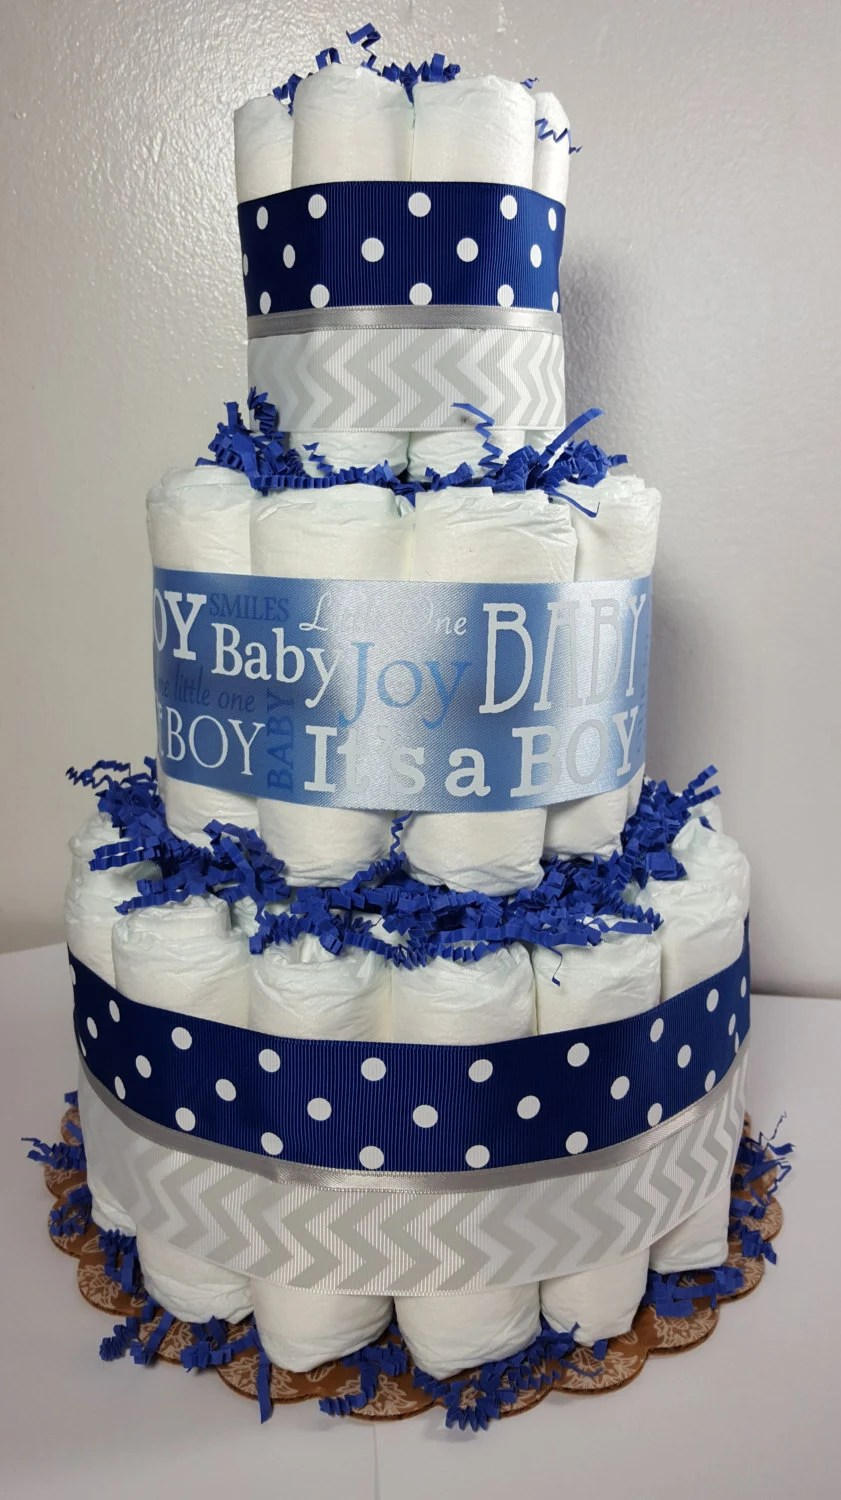 Baby Select Diapers 3 Tier Diaper Cake Blue Silver Chevron It 39;s A Boy Baby